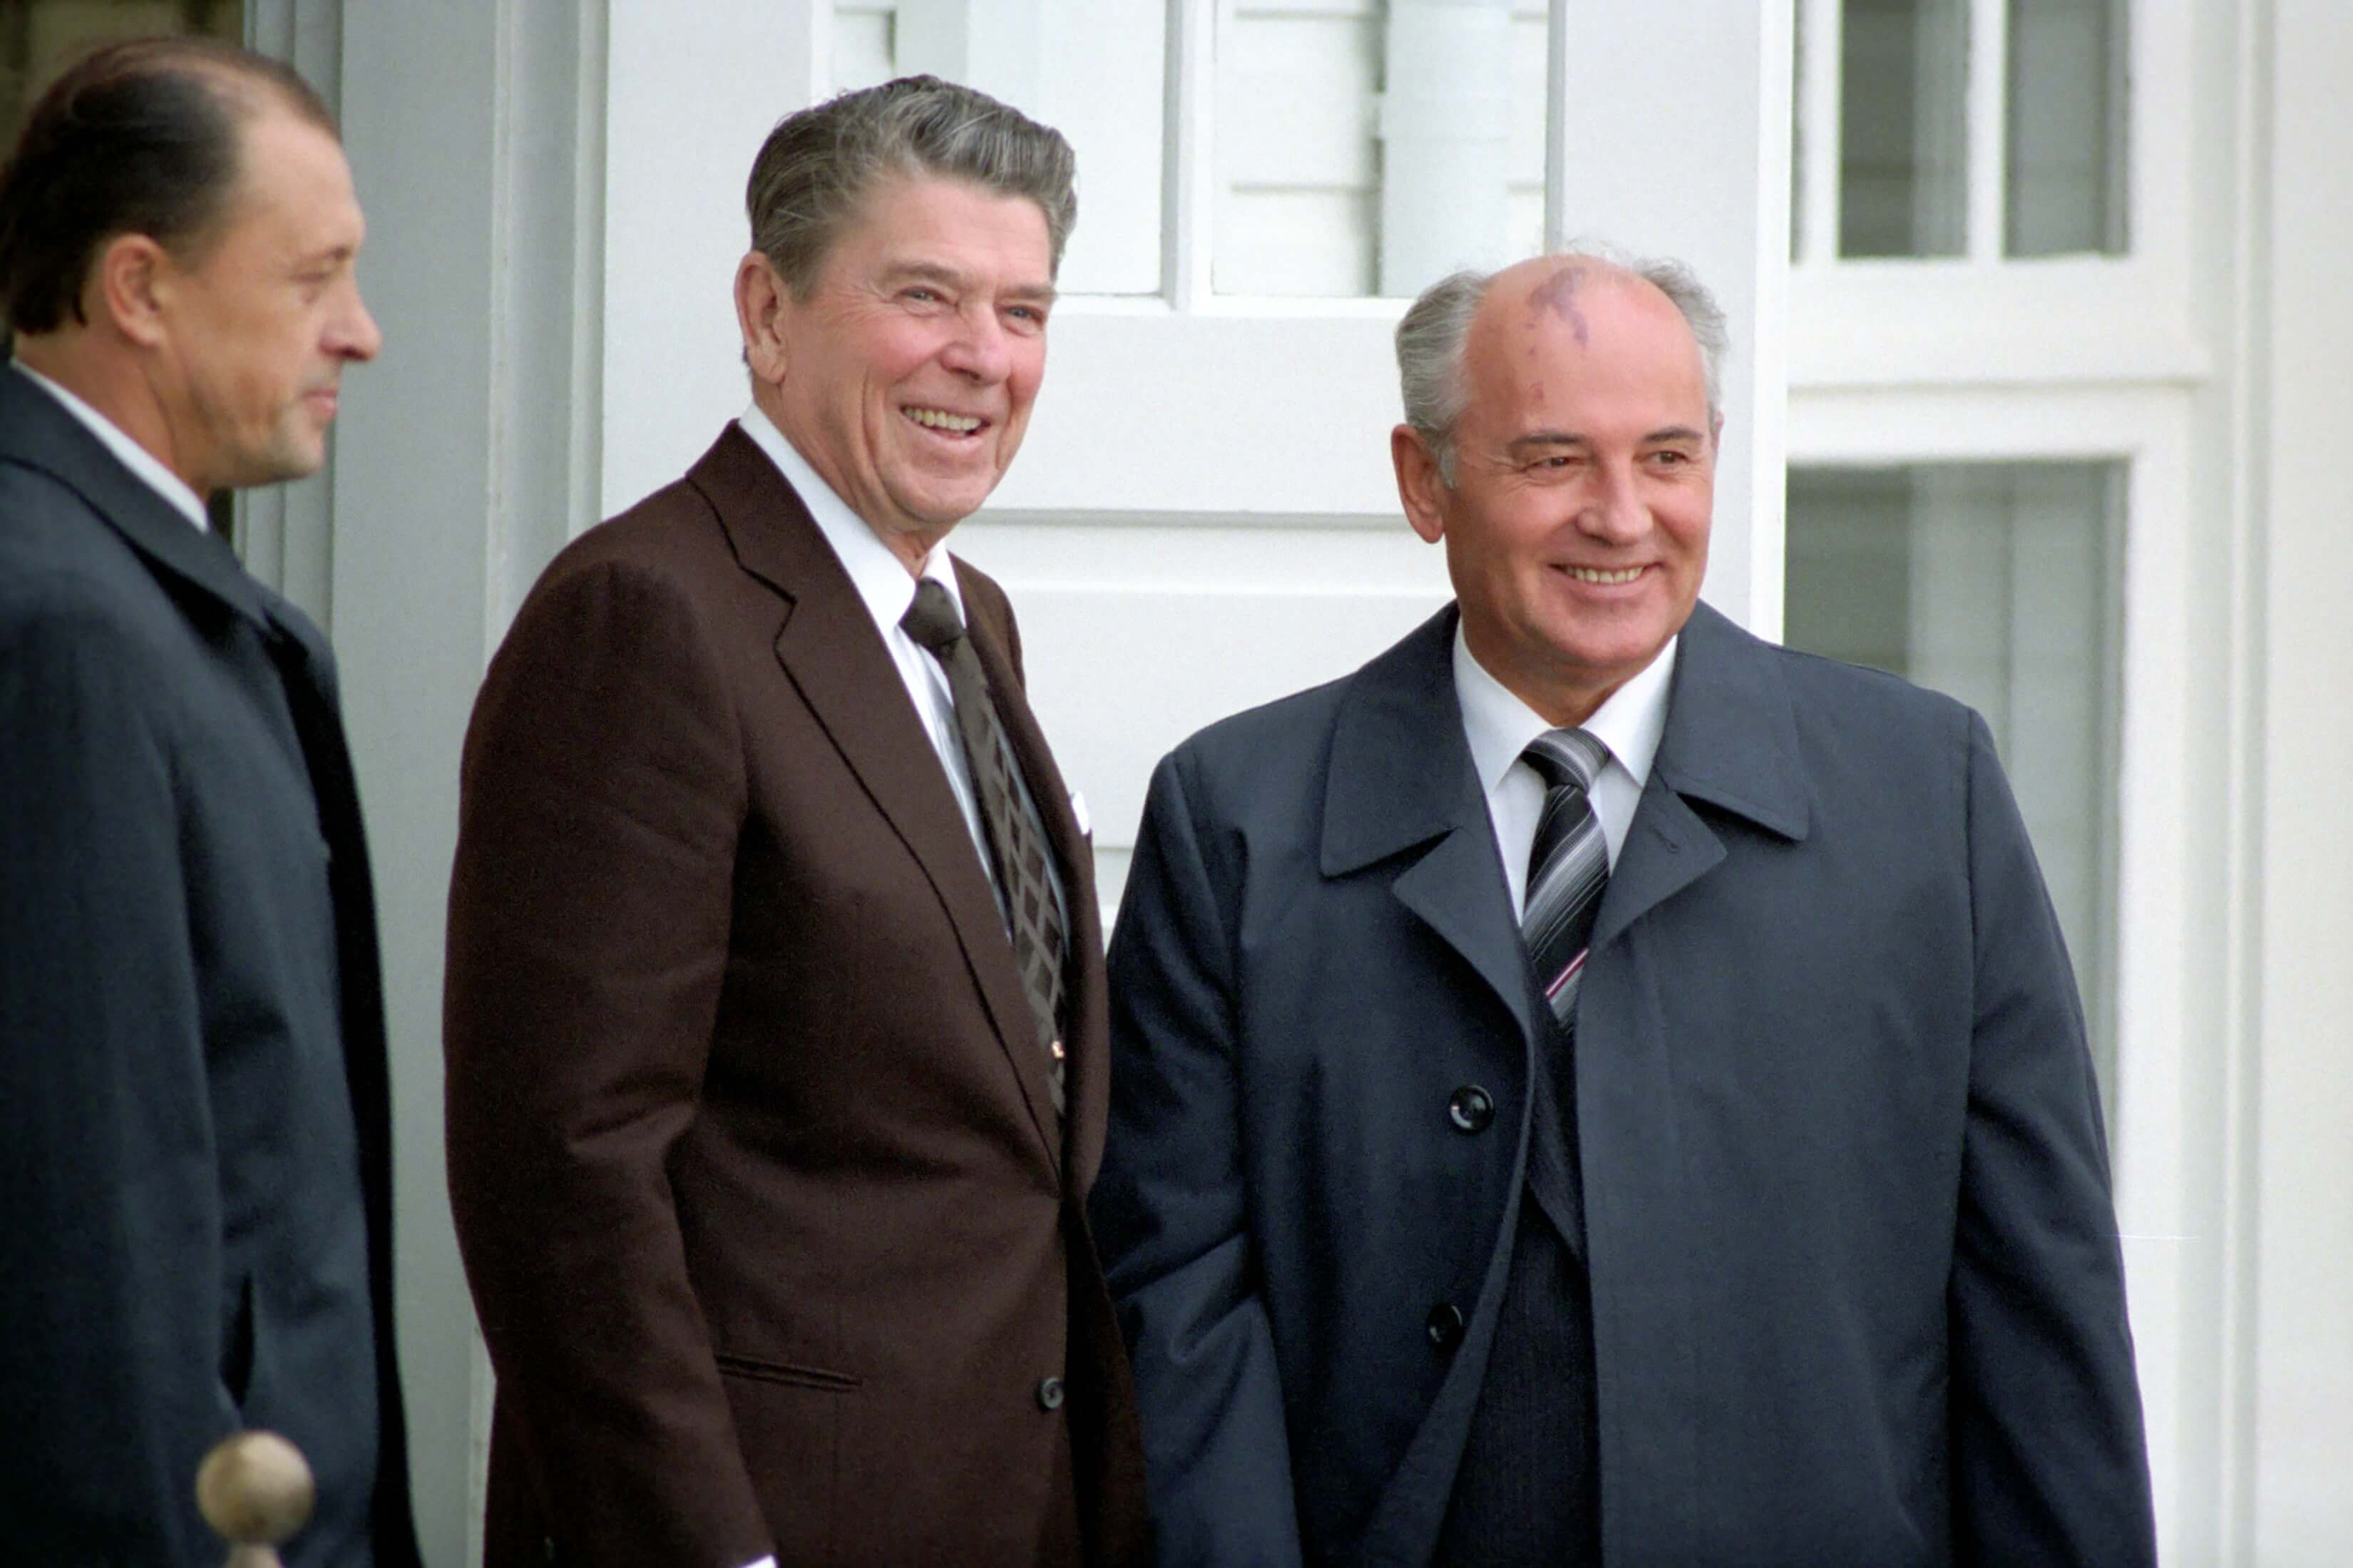 US President Reagan and Soviet General Secretary Gorbachev at the Reykjavik Summit, 1986. © The Official CTBTO Photostream/Flickr